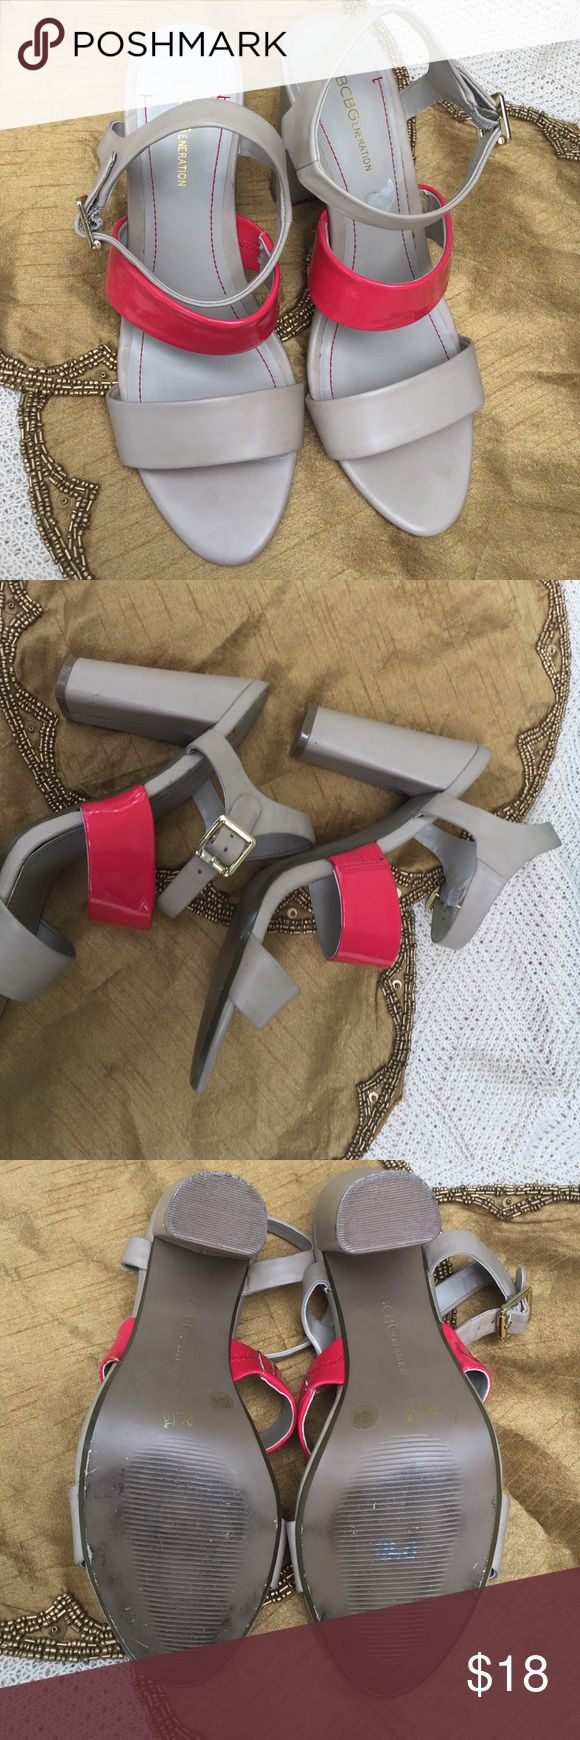 BCBG generation strapy chunky high heel sandals BCBG generation strapy chunky high heel sandals. In good condition tan color with orange patent leather straps size 10 B/40 BCBGeneration Shoes Heels